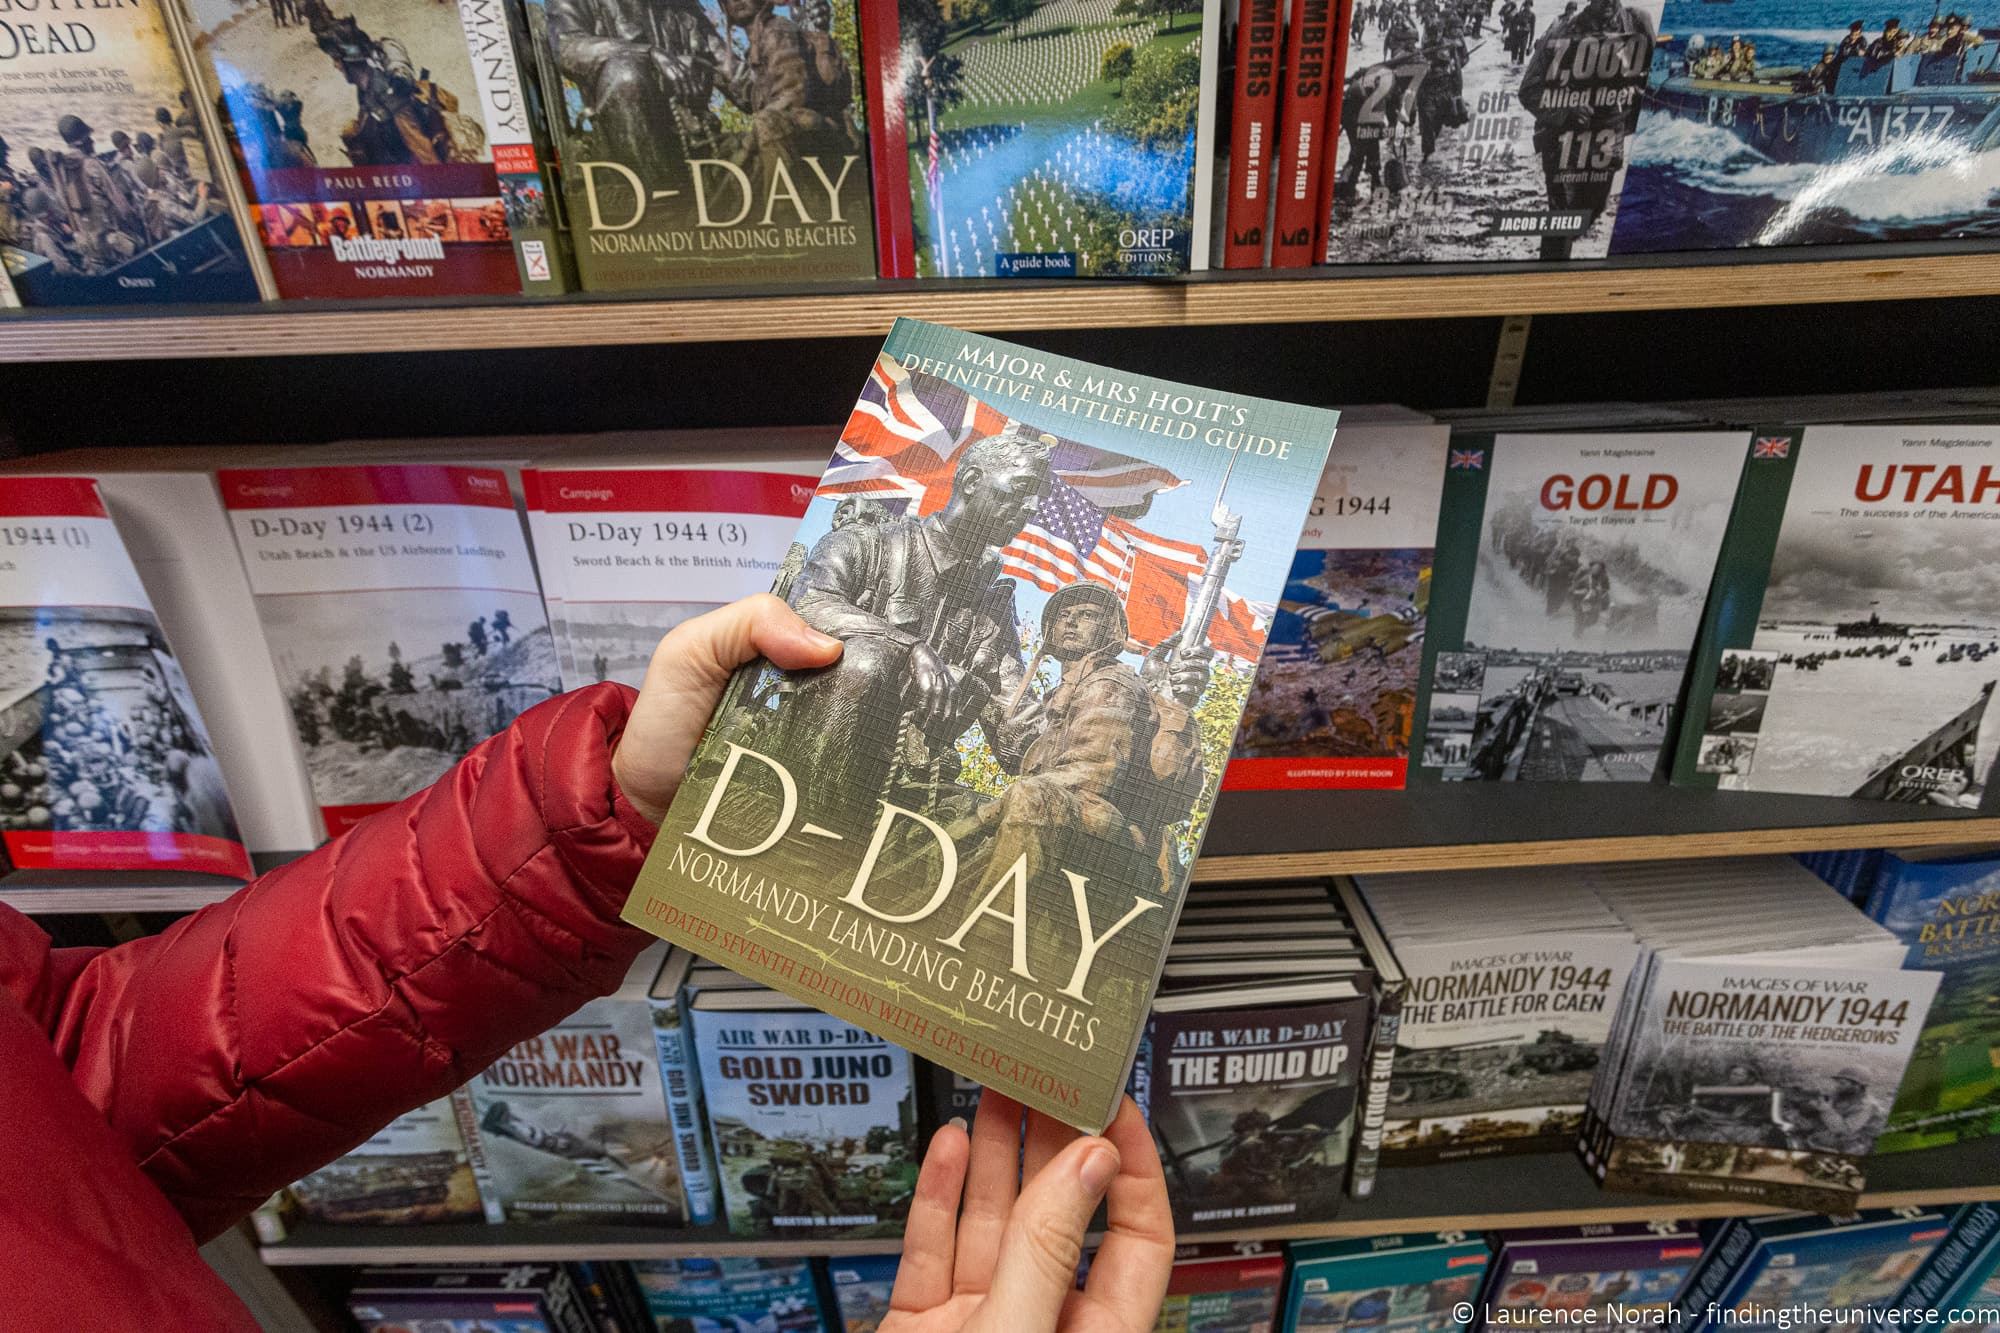 D-Day Story Portsmouth